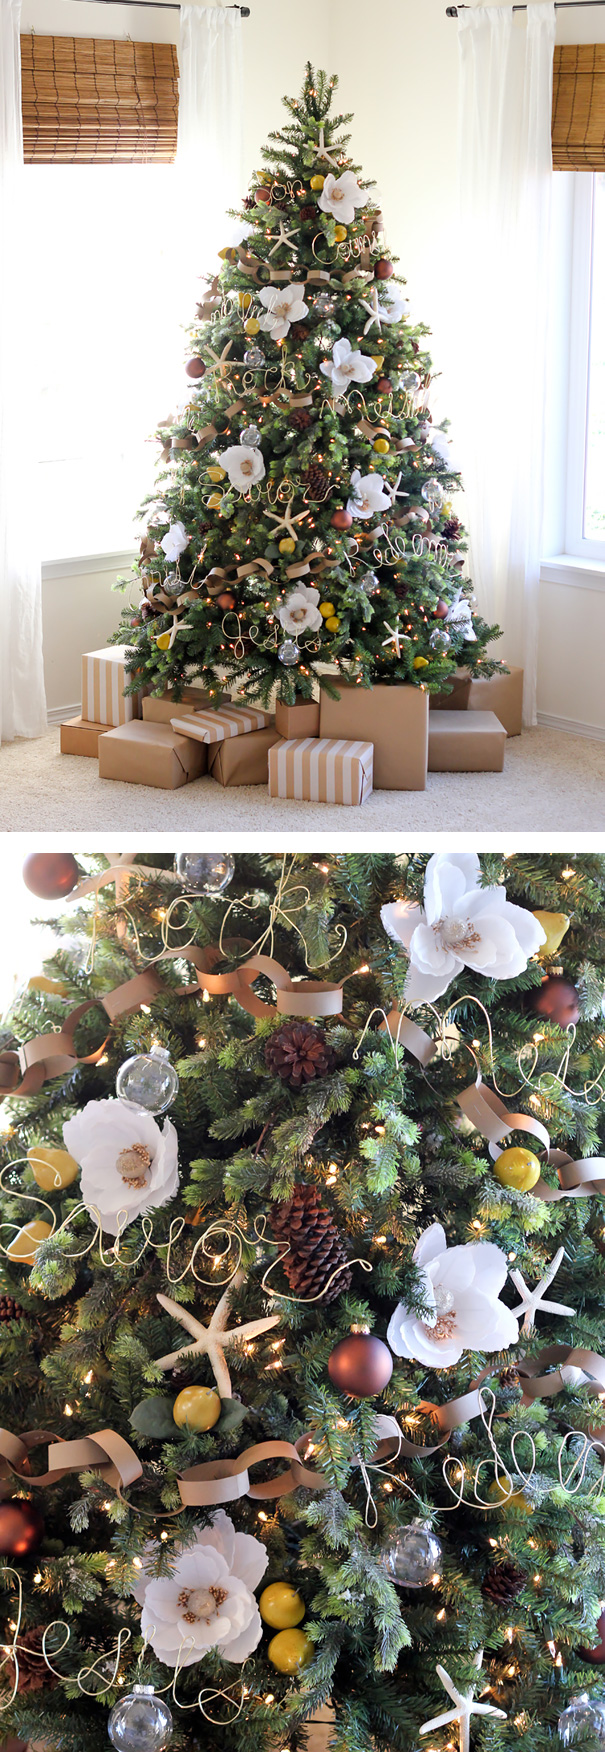 flower-floral-christmas-tree-decorations-5